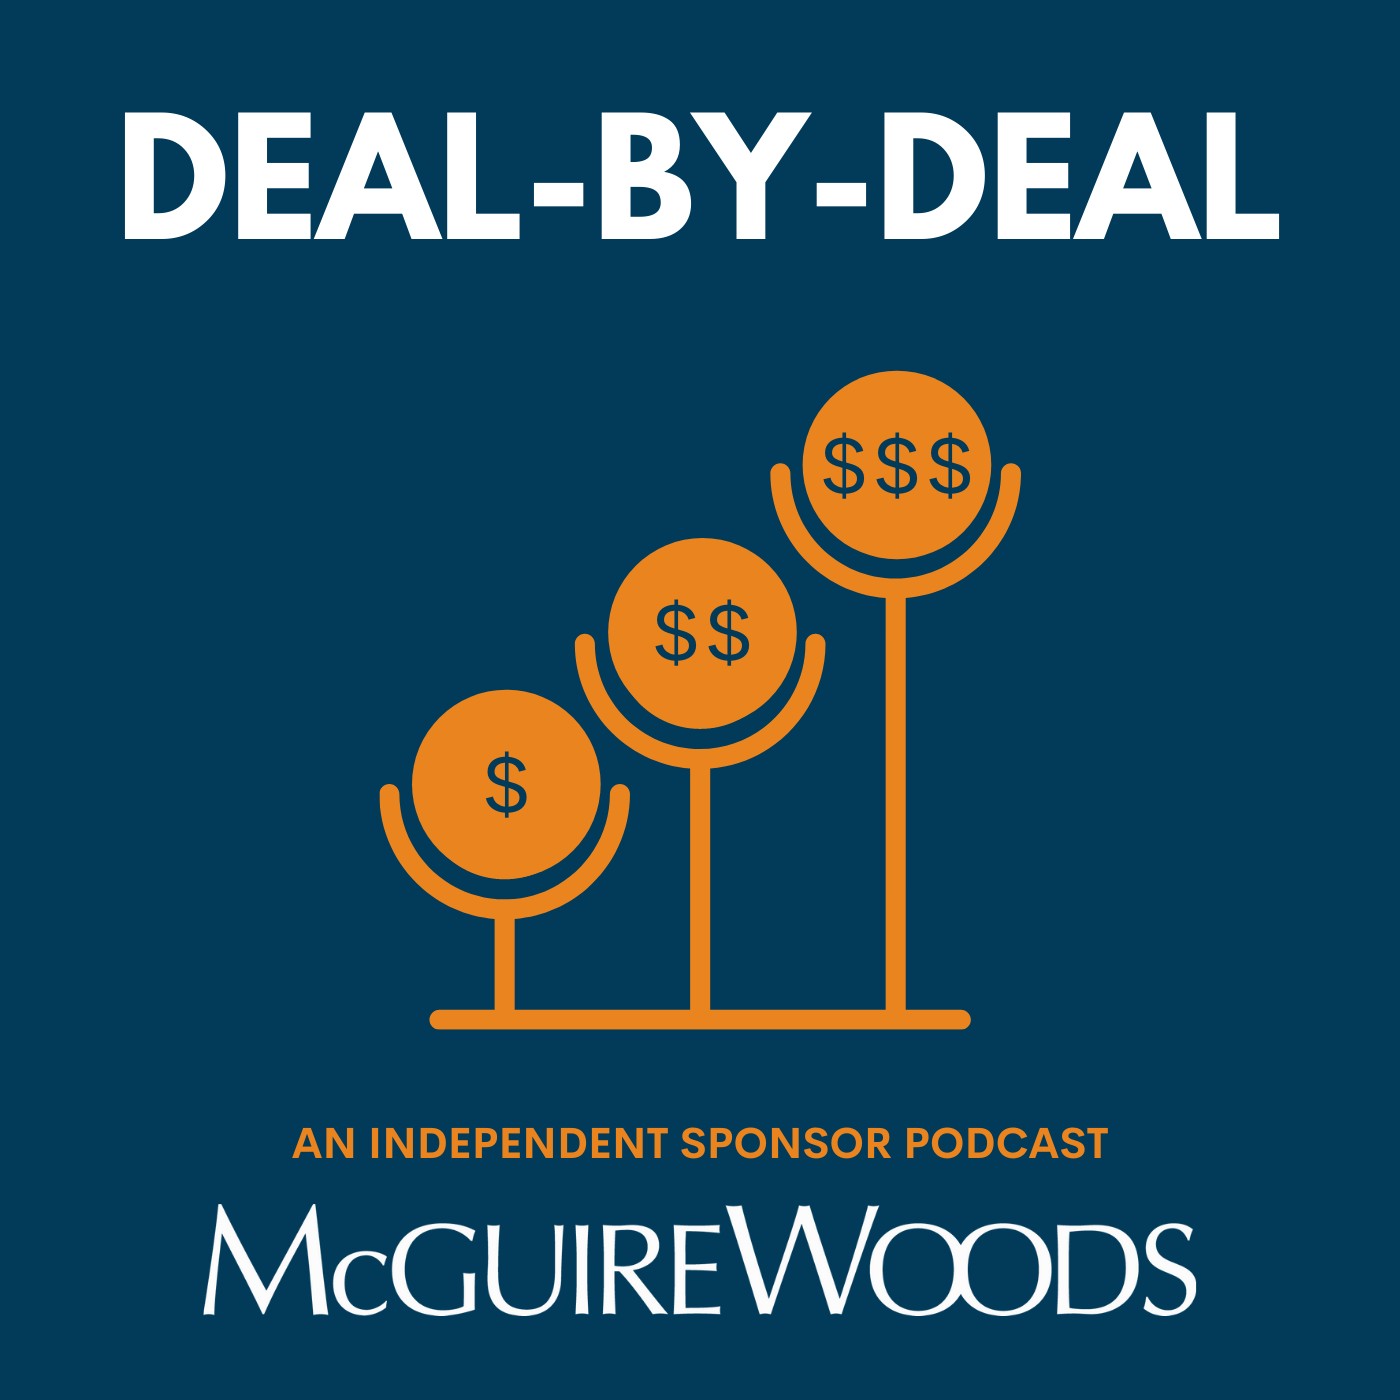 Artwork for podcast Deal-by-Deal: An Independent Sponsor Podcast